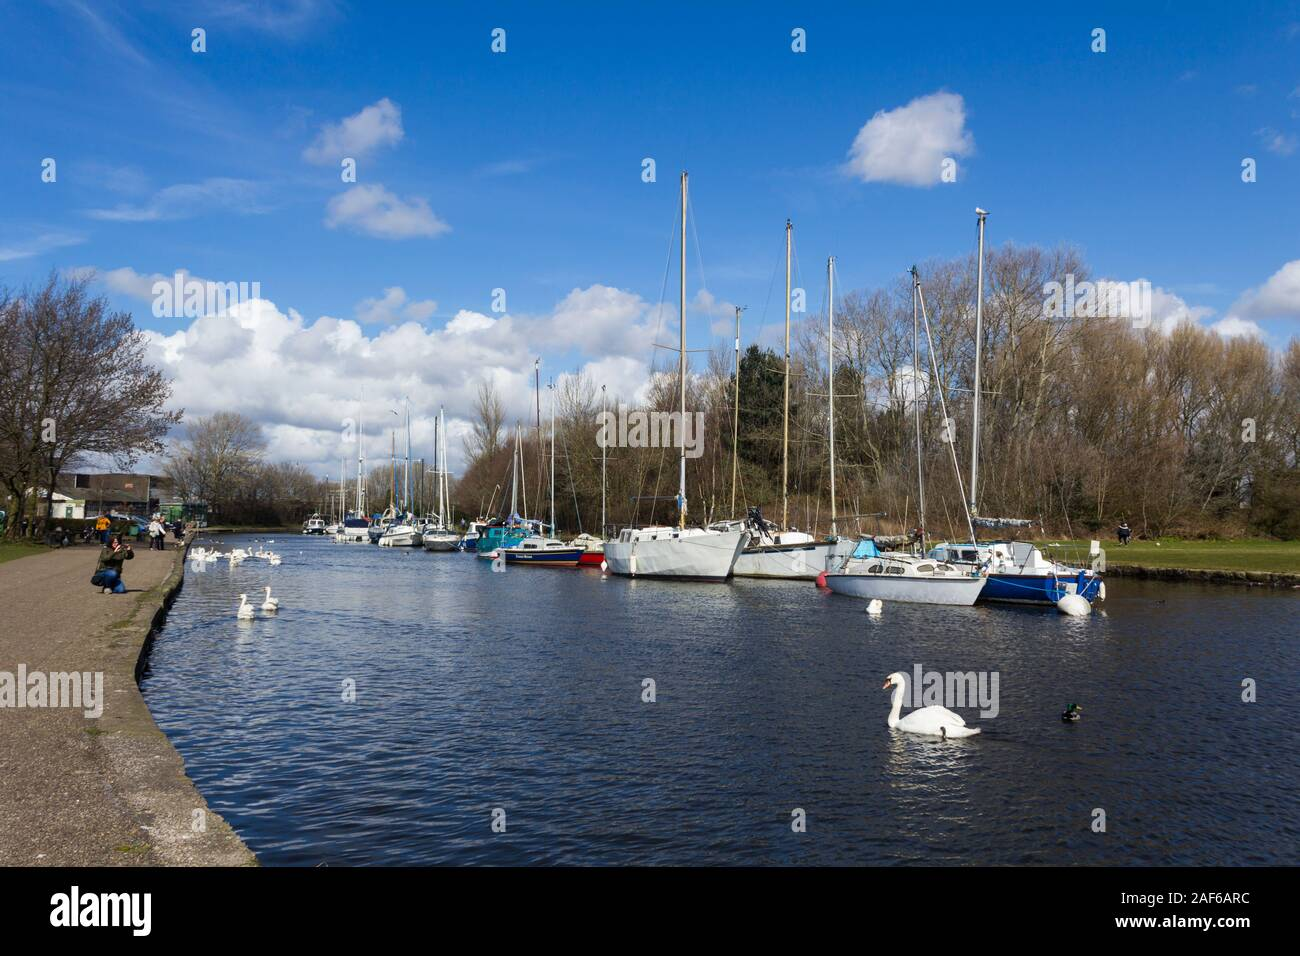 St. Helens canal (originally the Sankey canal) next to Spike Island nature reserve and close to the locks connecting the canal to the River Mersey. Stock Photo